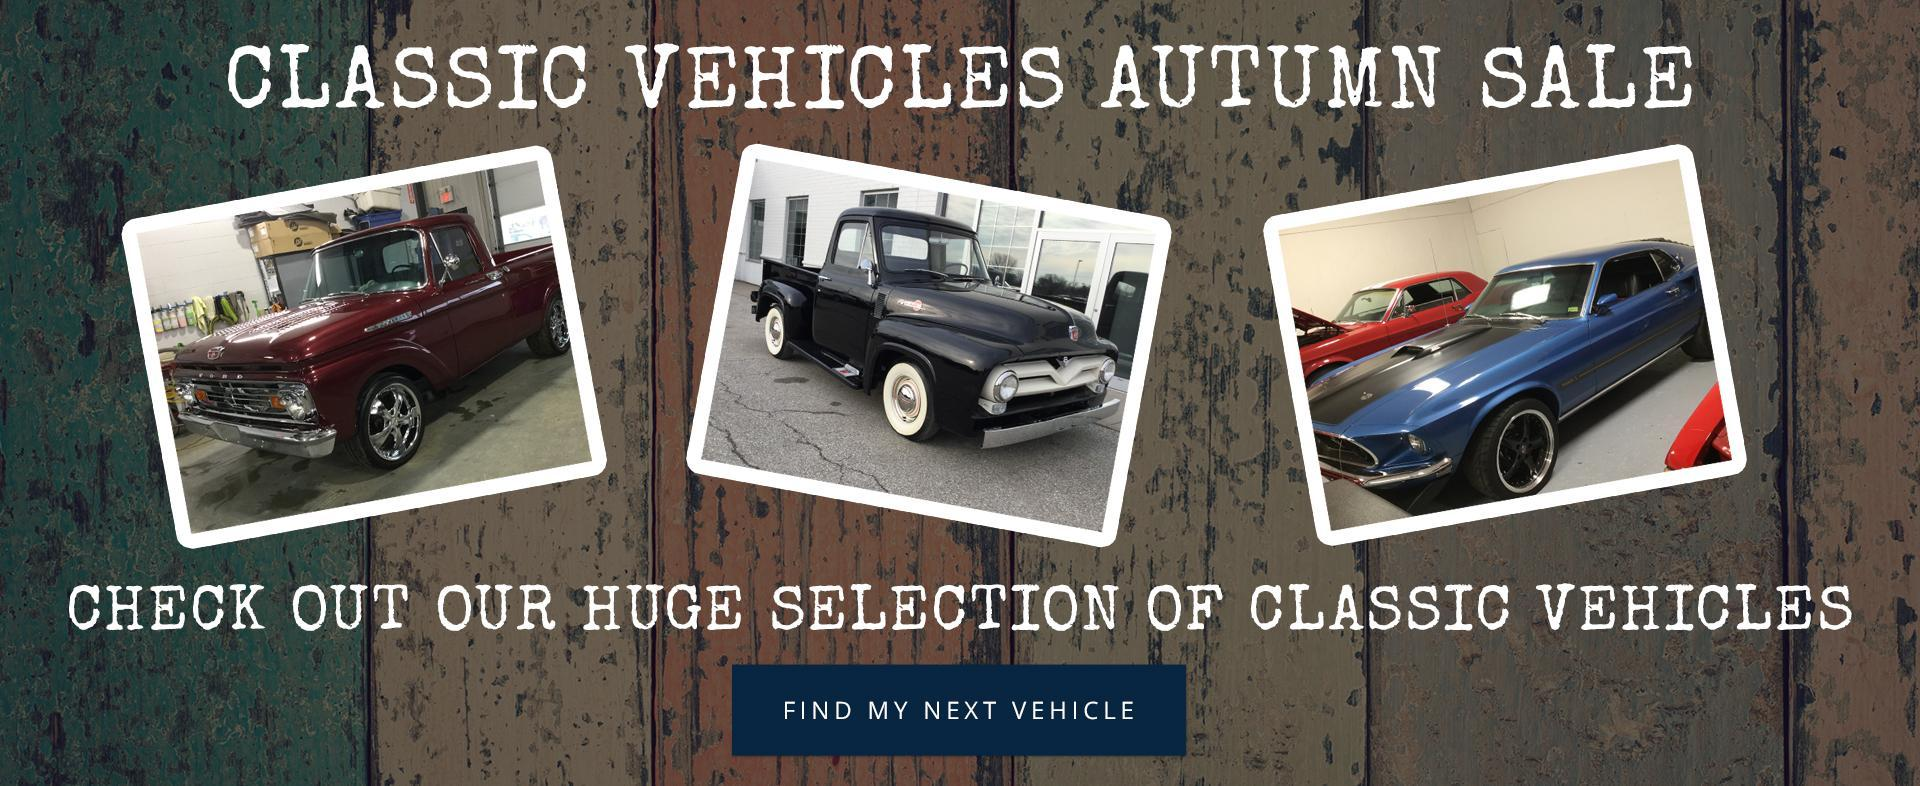 Classic Vehicles Autumn Sale